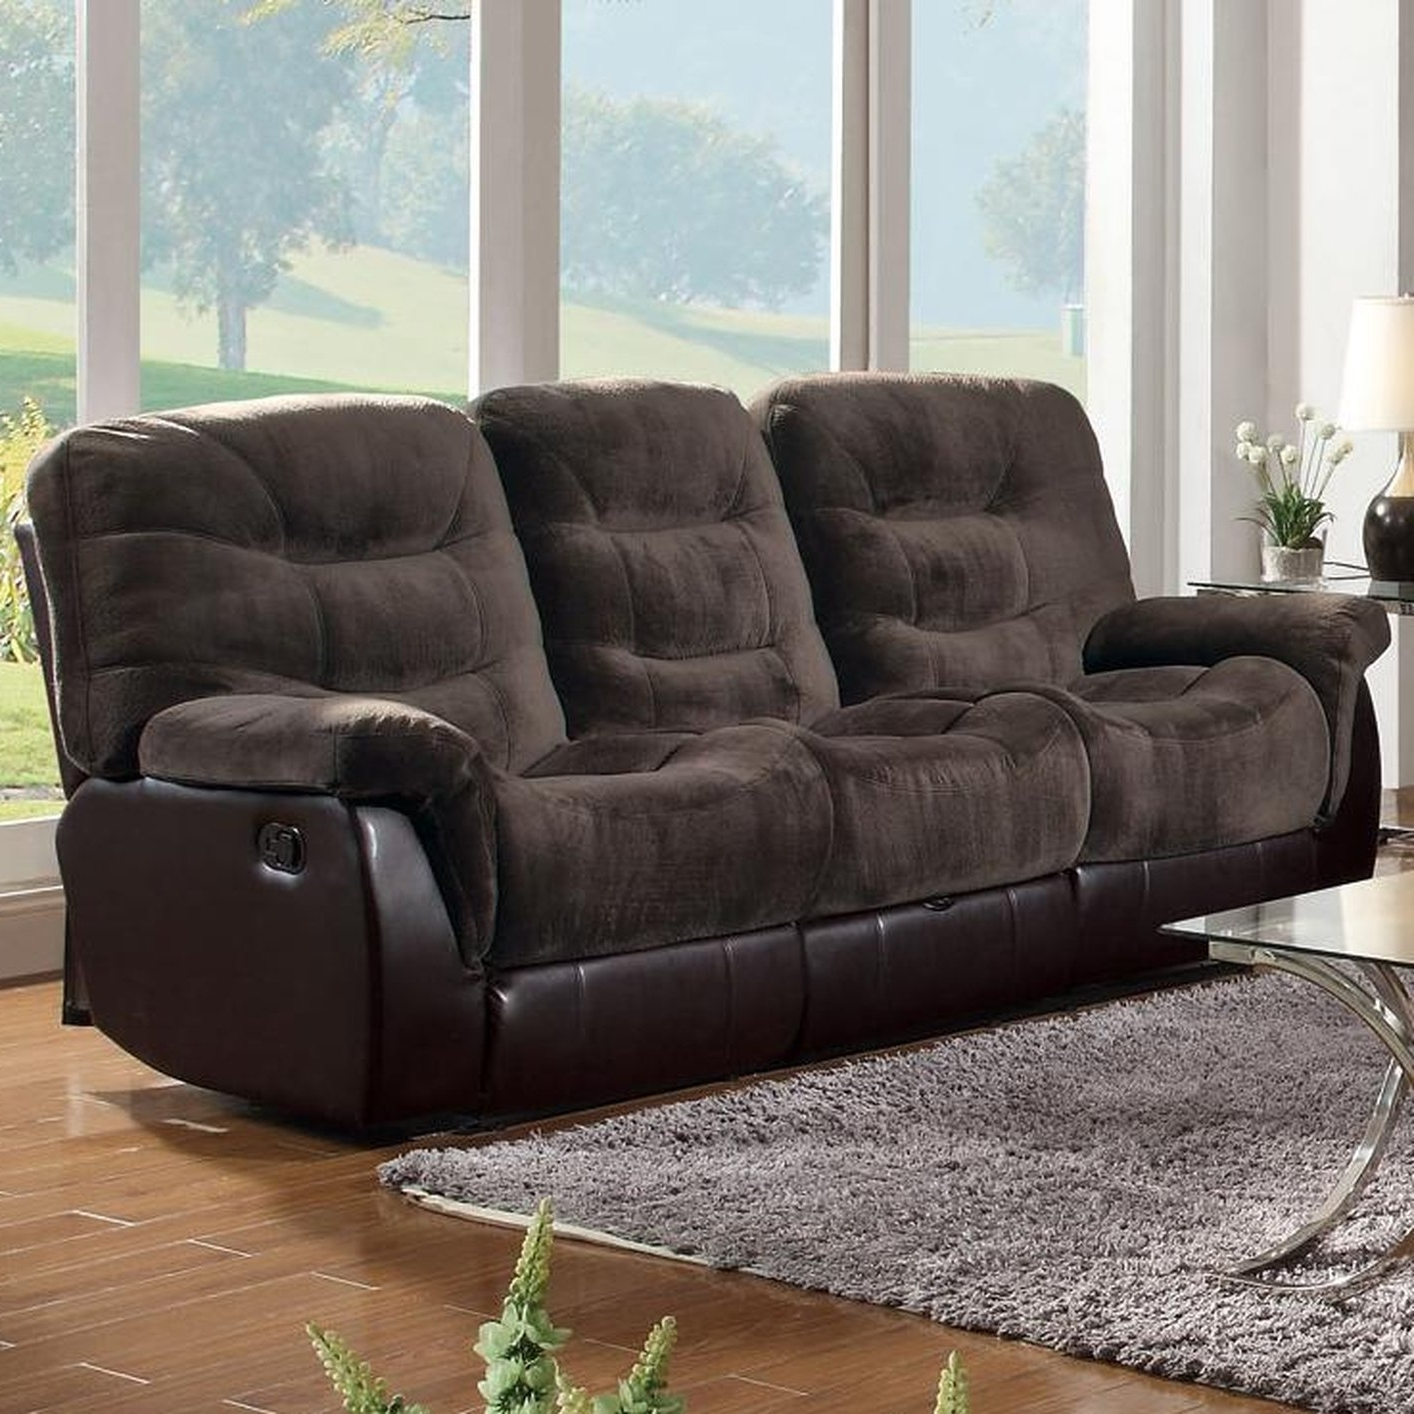 Most Current Sofa : Fabric Sectional Sofa With Power Recliner Fabric Recliner With Regard To Jedd Fabric Reclining Sectional Sofas (View 2 of 20)